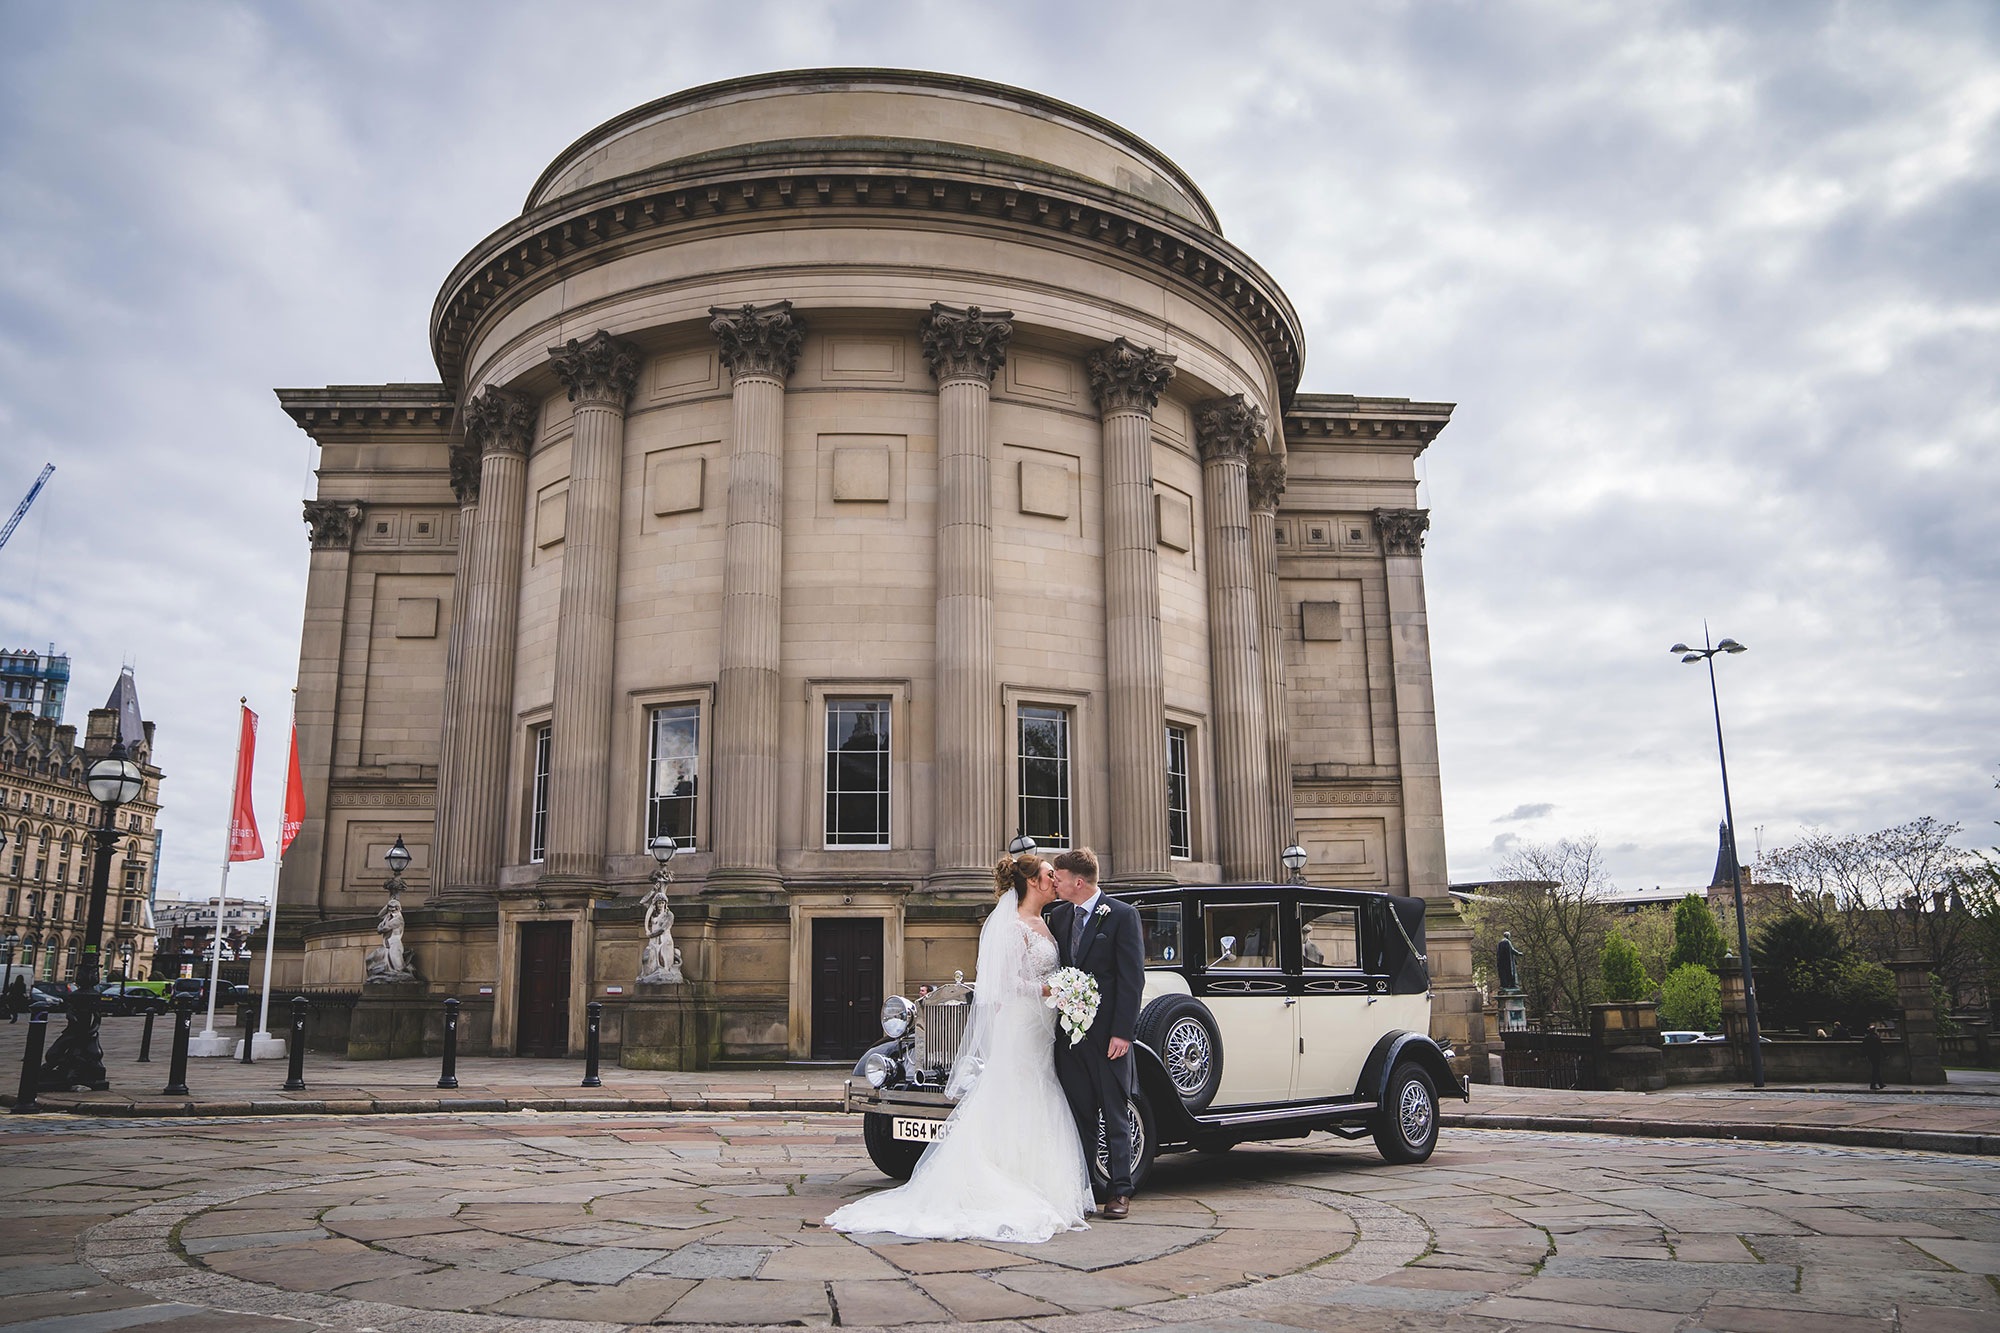 Married couple outside entrance to St Georges Hall